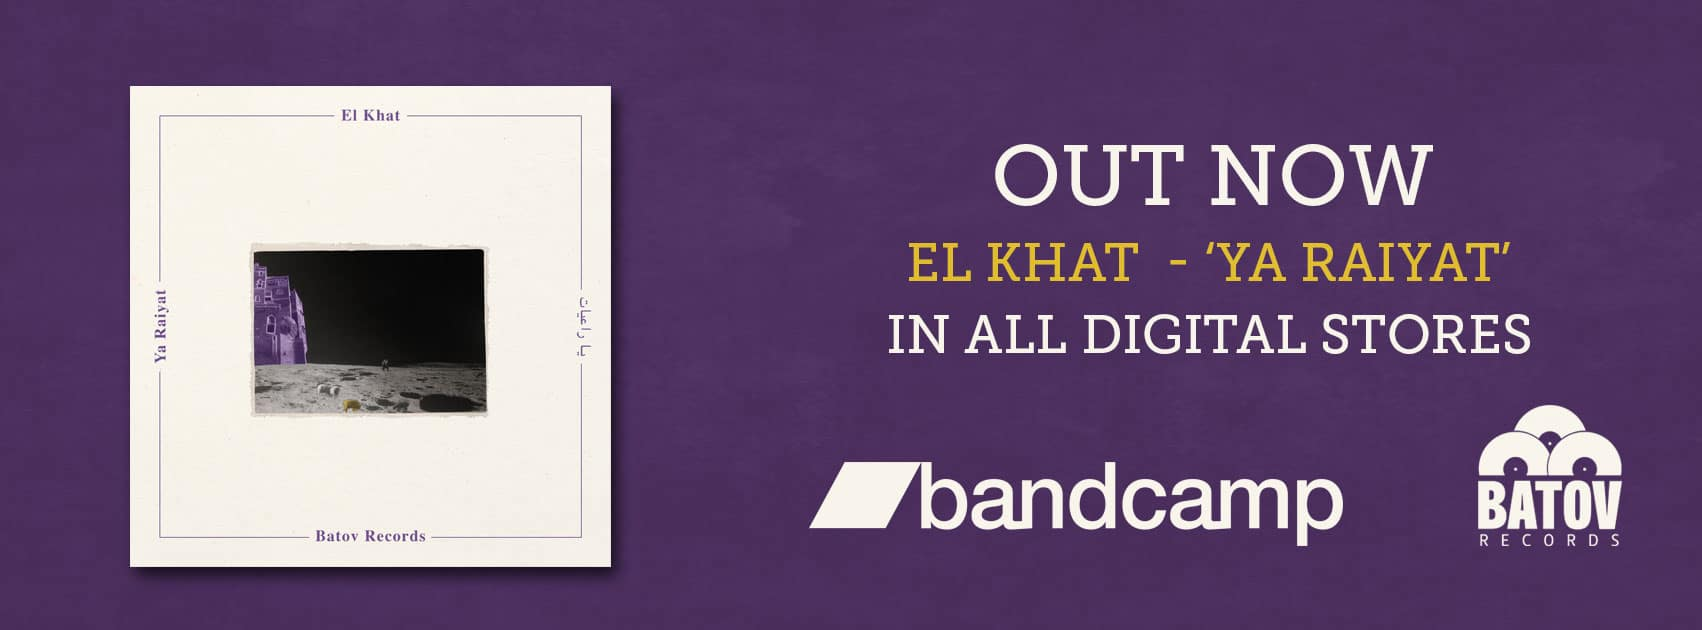 El Khat - Ya Raiyat - OUT NOW 1